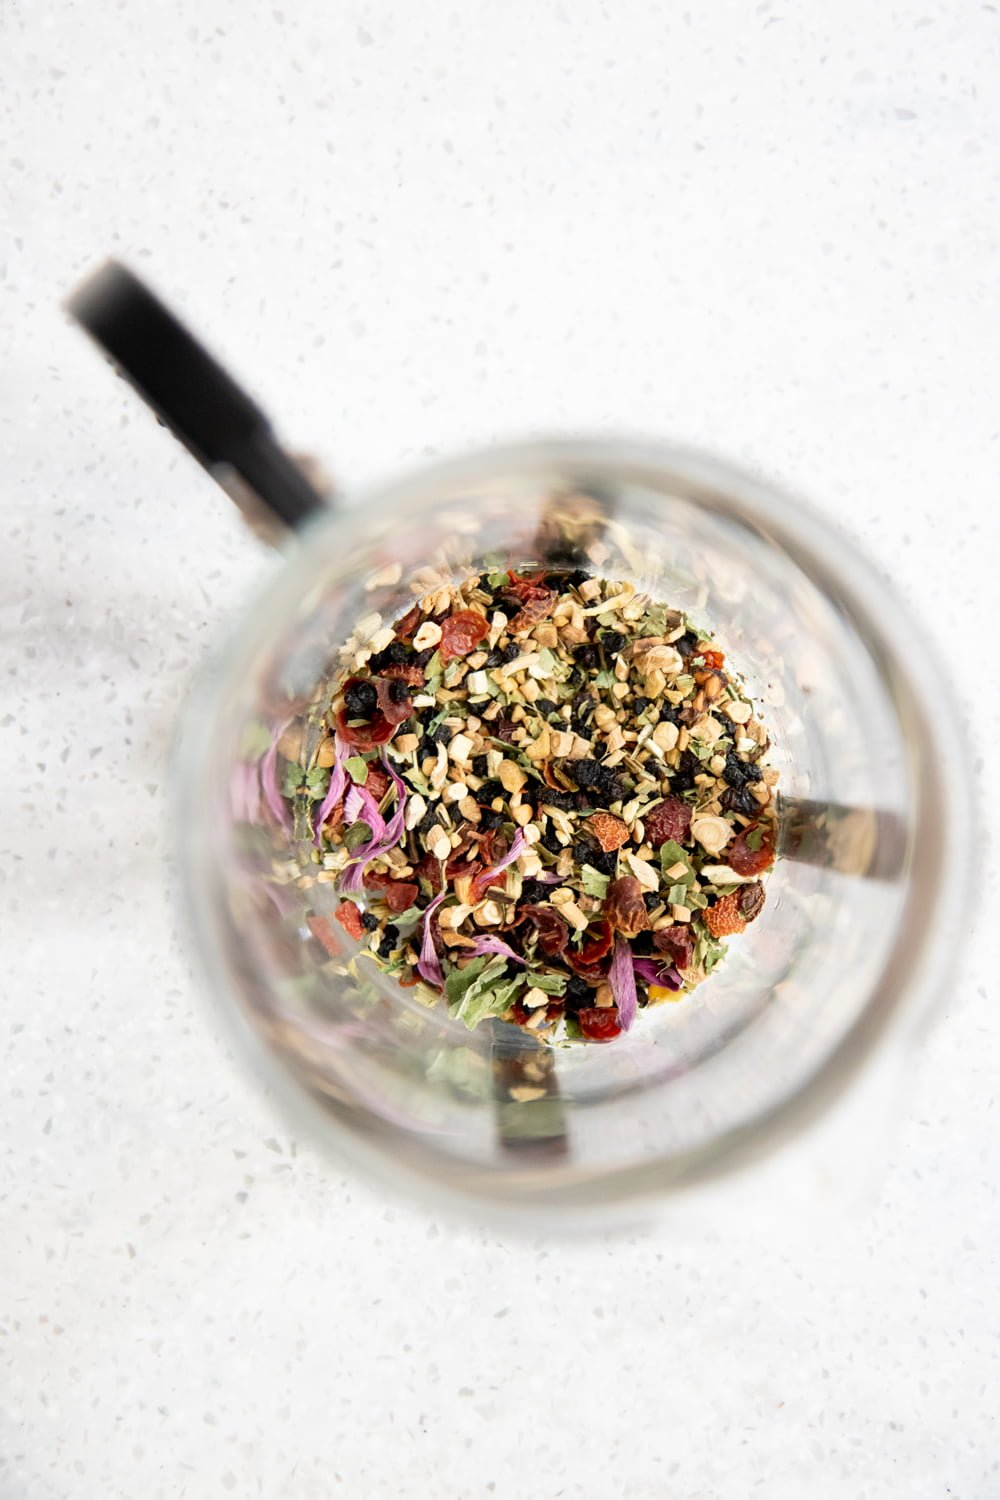 Overhead shot of herbal tea blend in a French press